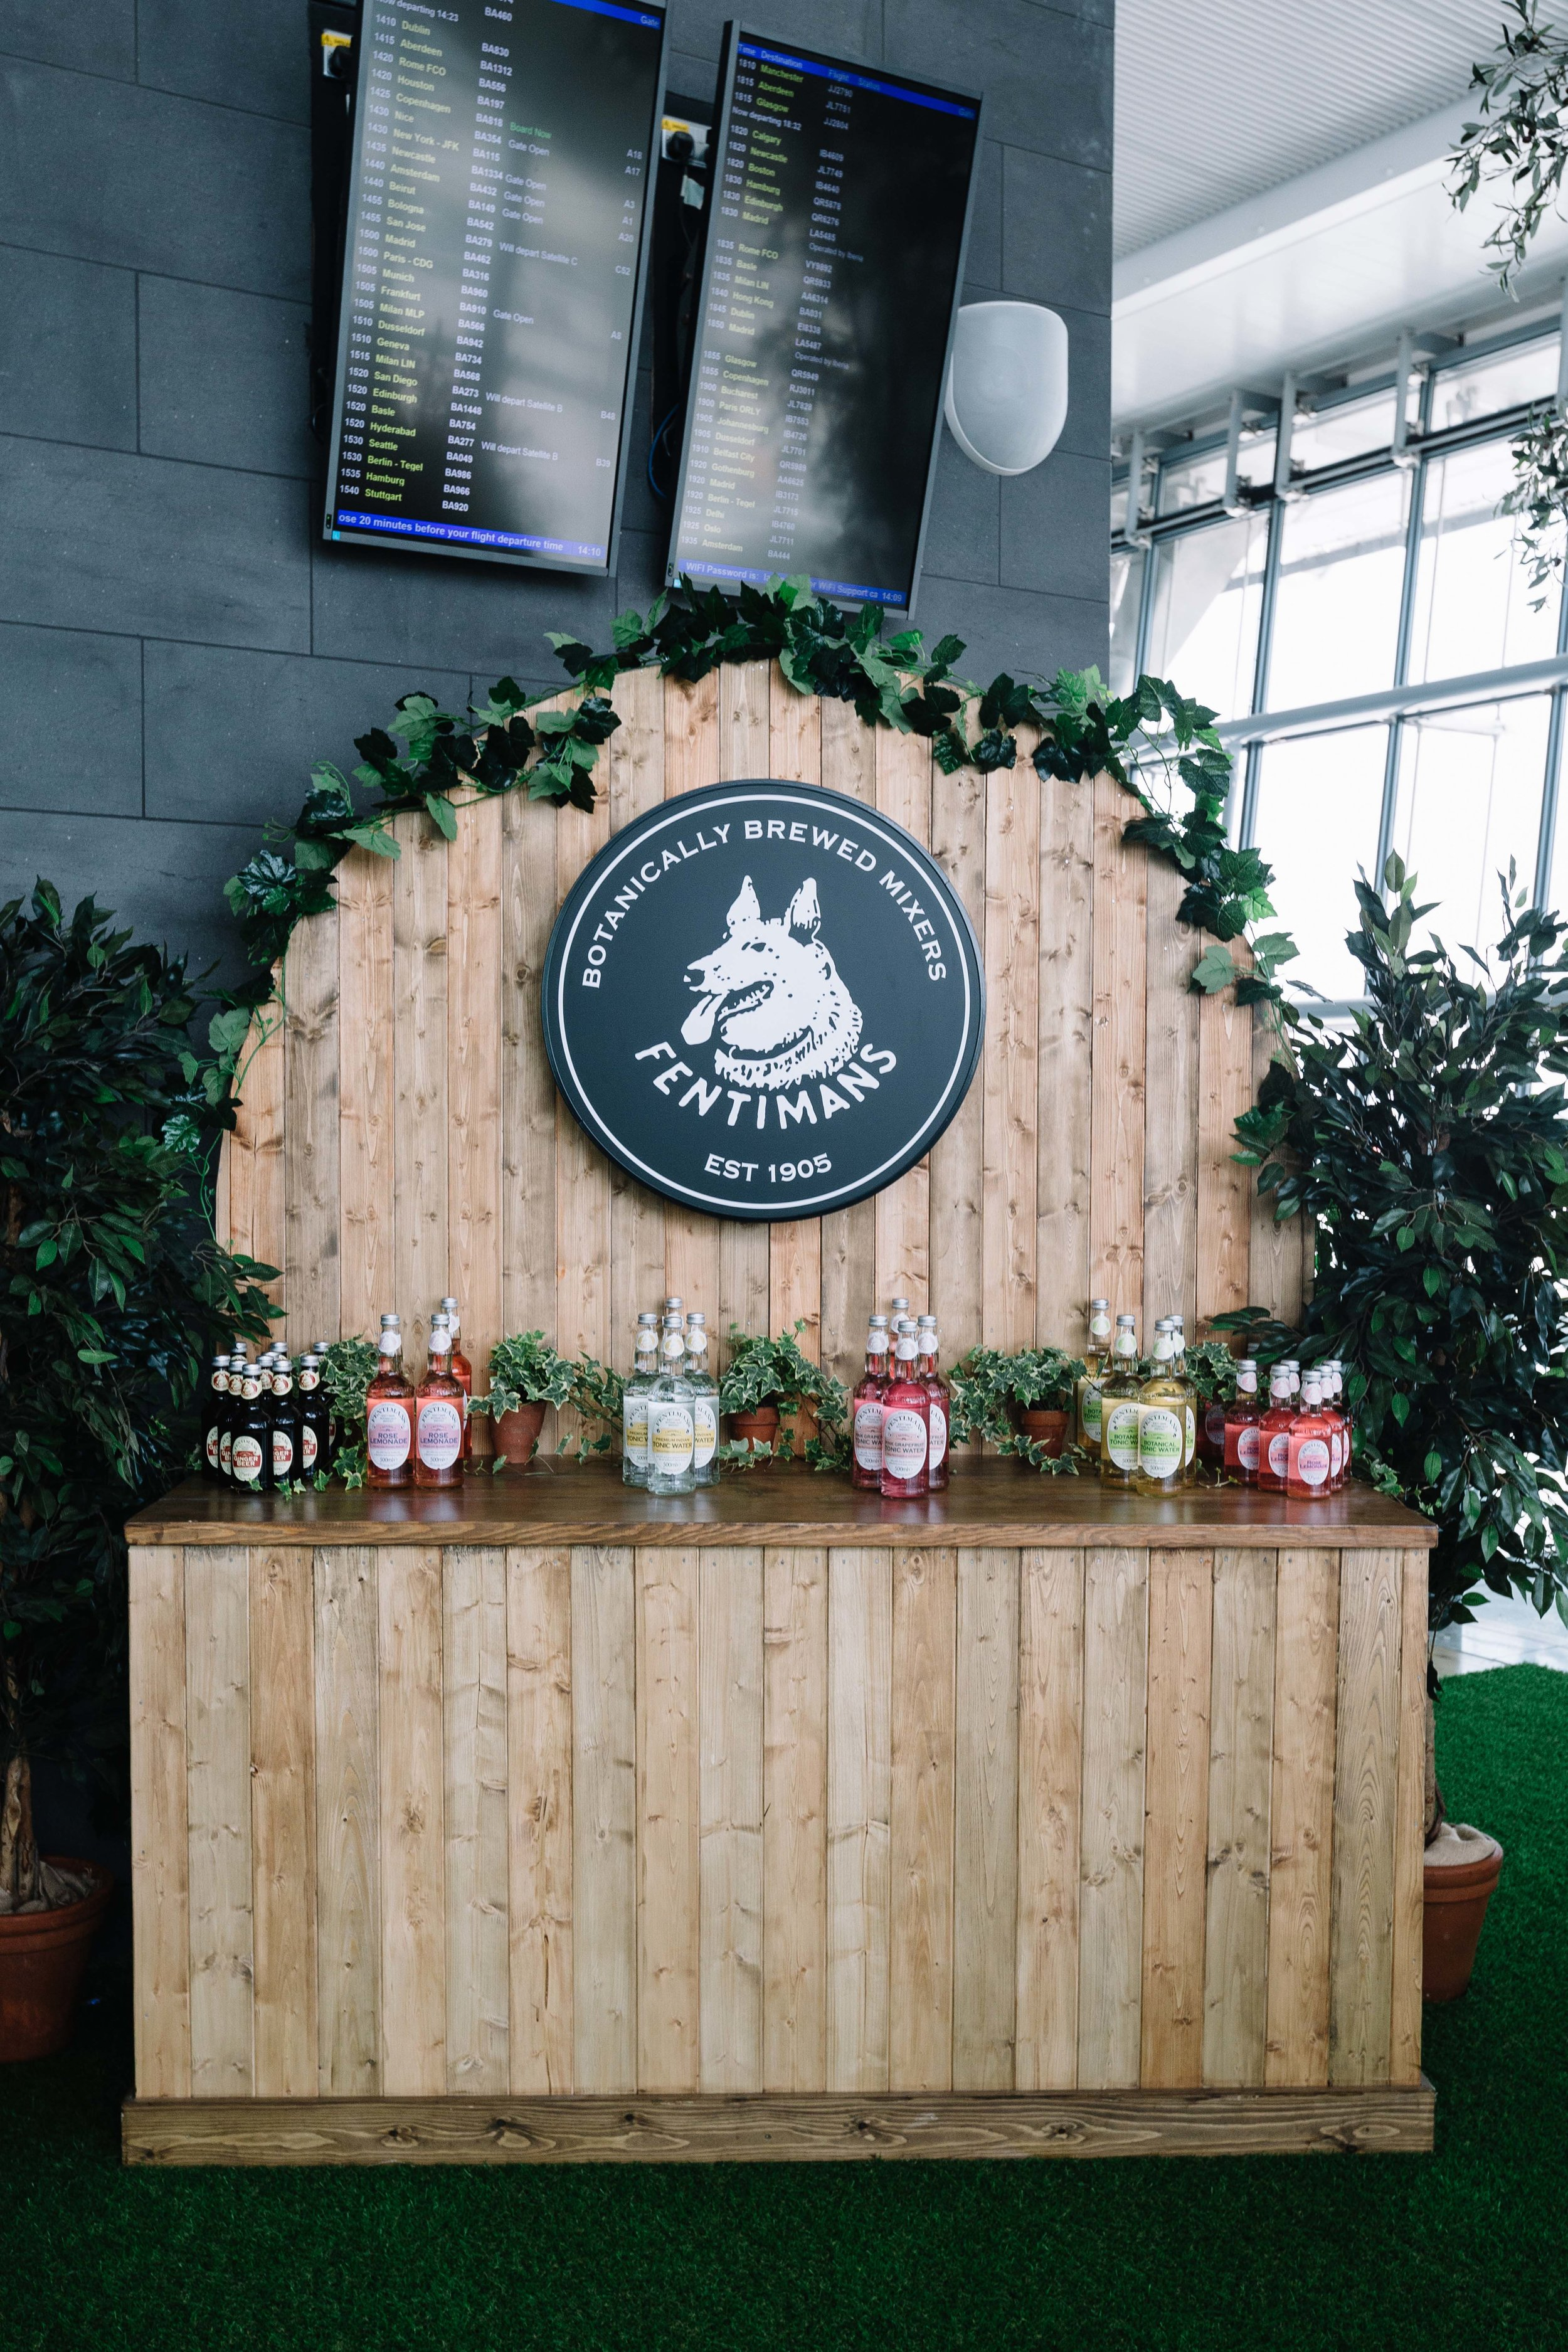 Fentimans at British Airways Lounge Gin Festival Full.jpg